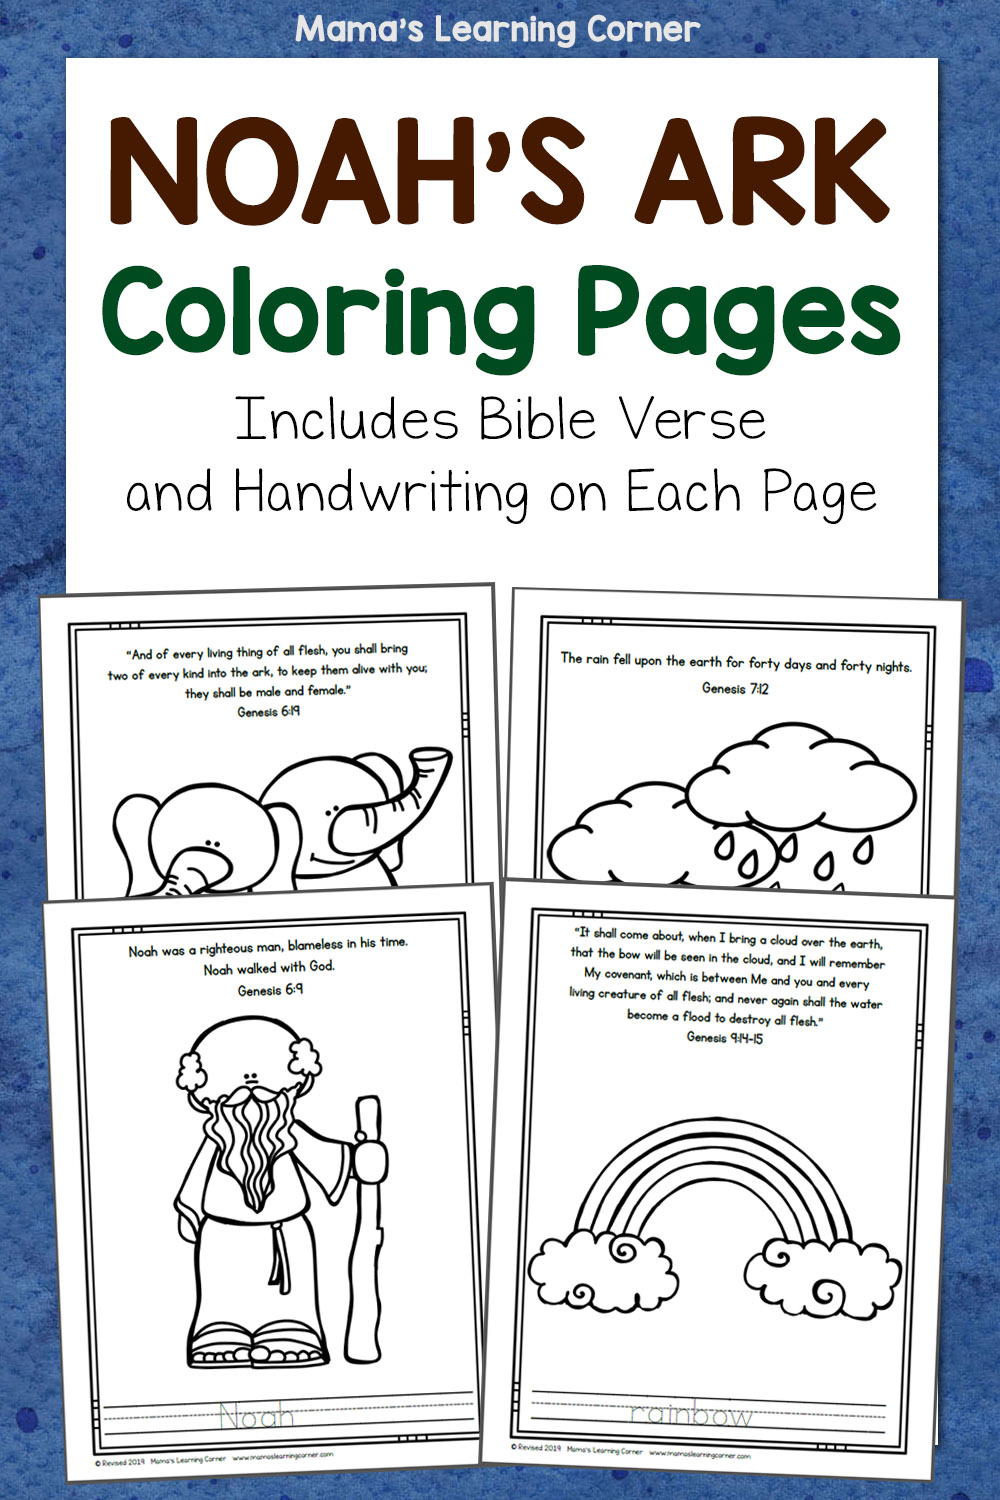 Noah's Ark Coloring Pages : noah's, coloring, pages, Noah's, Coloring, Pages, Mamas, Learning, Corner